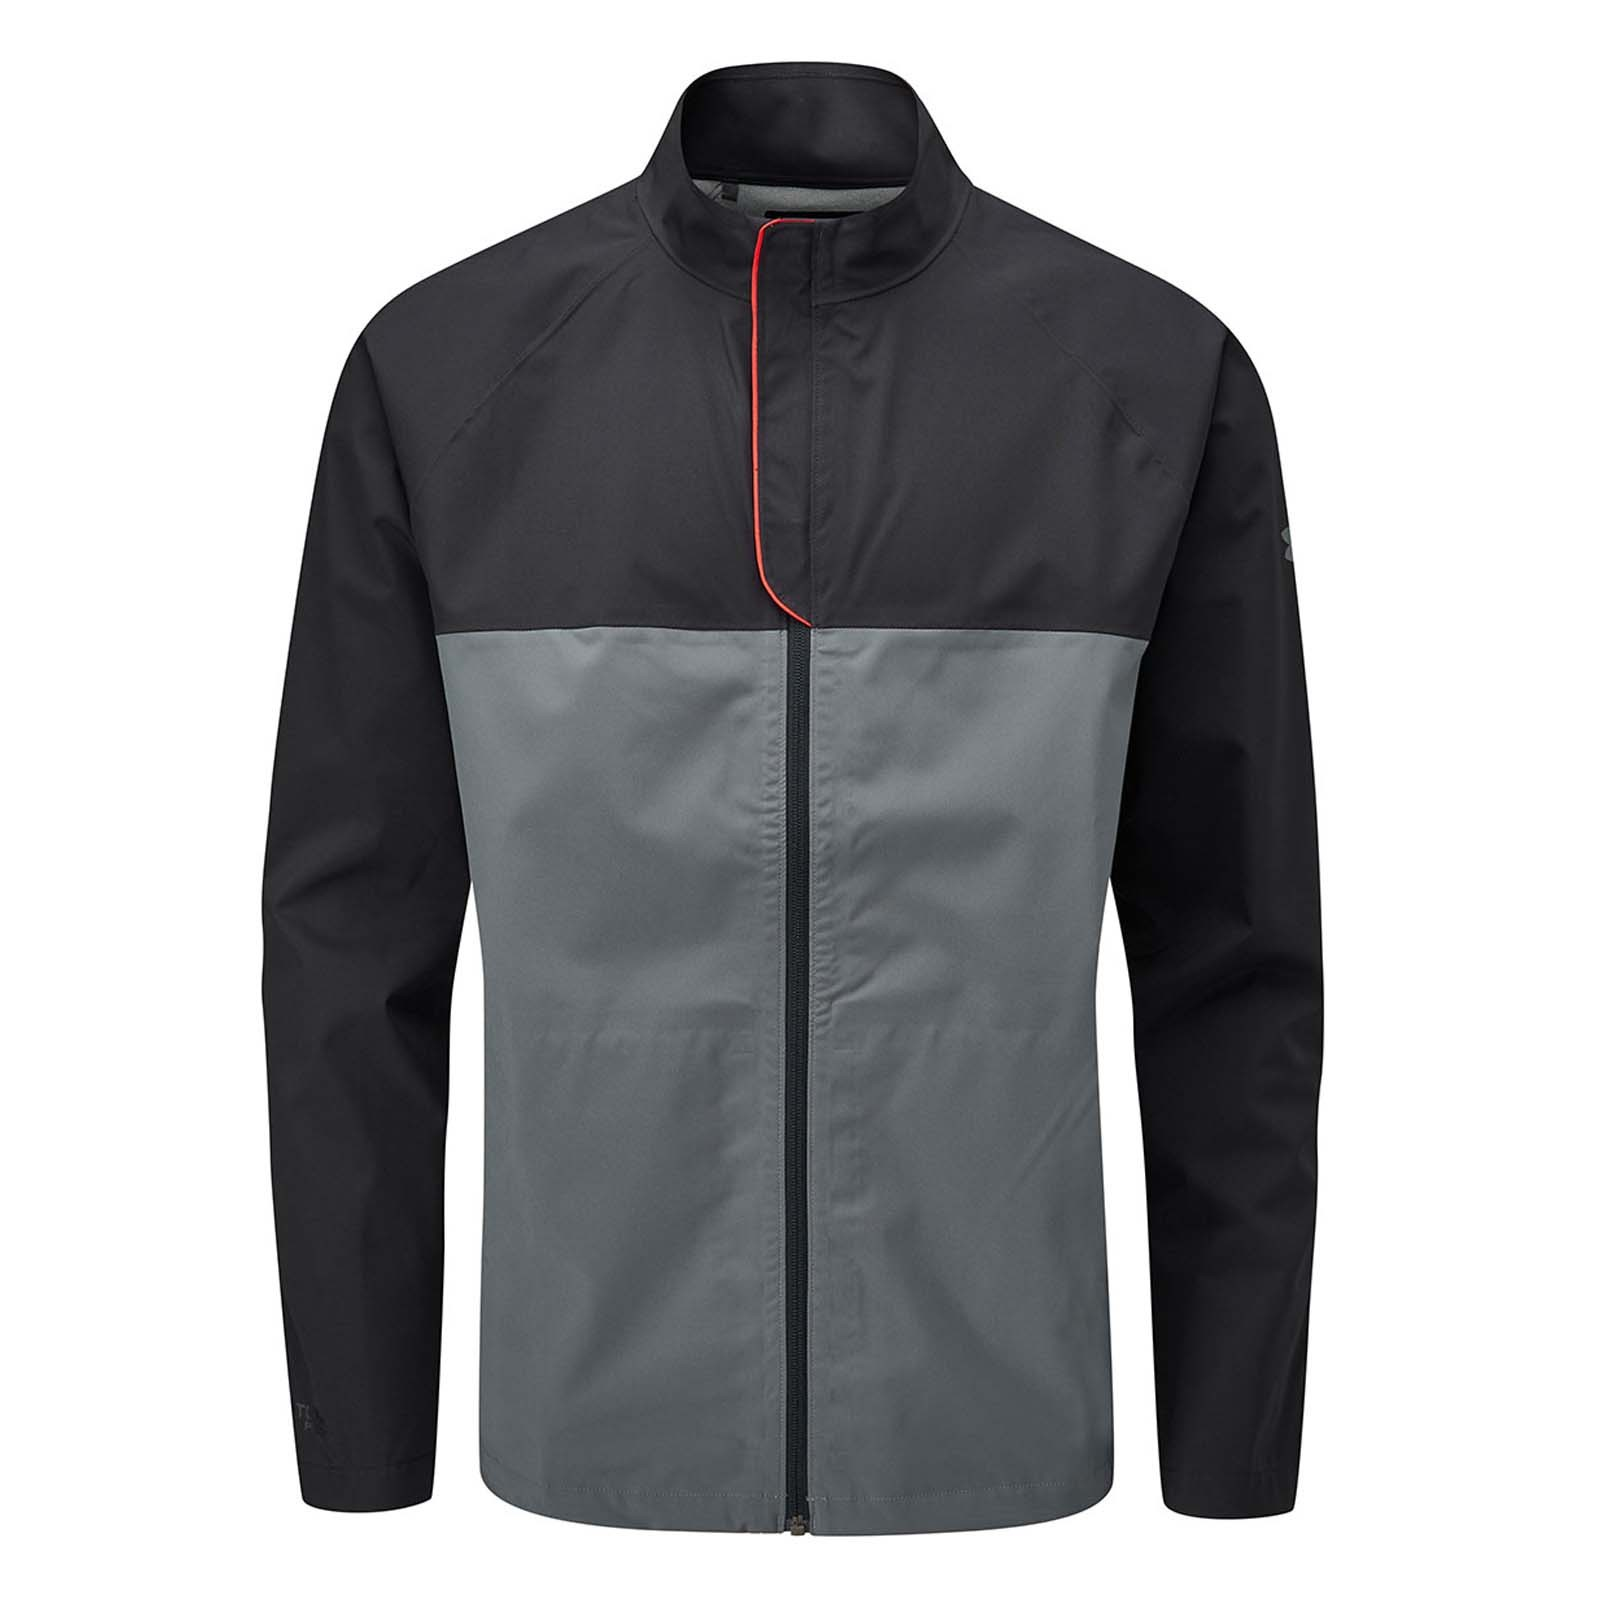 Under Armour Storm Proof Rain Jackets